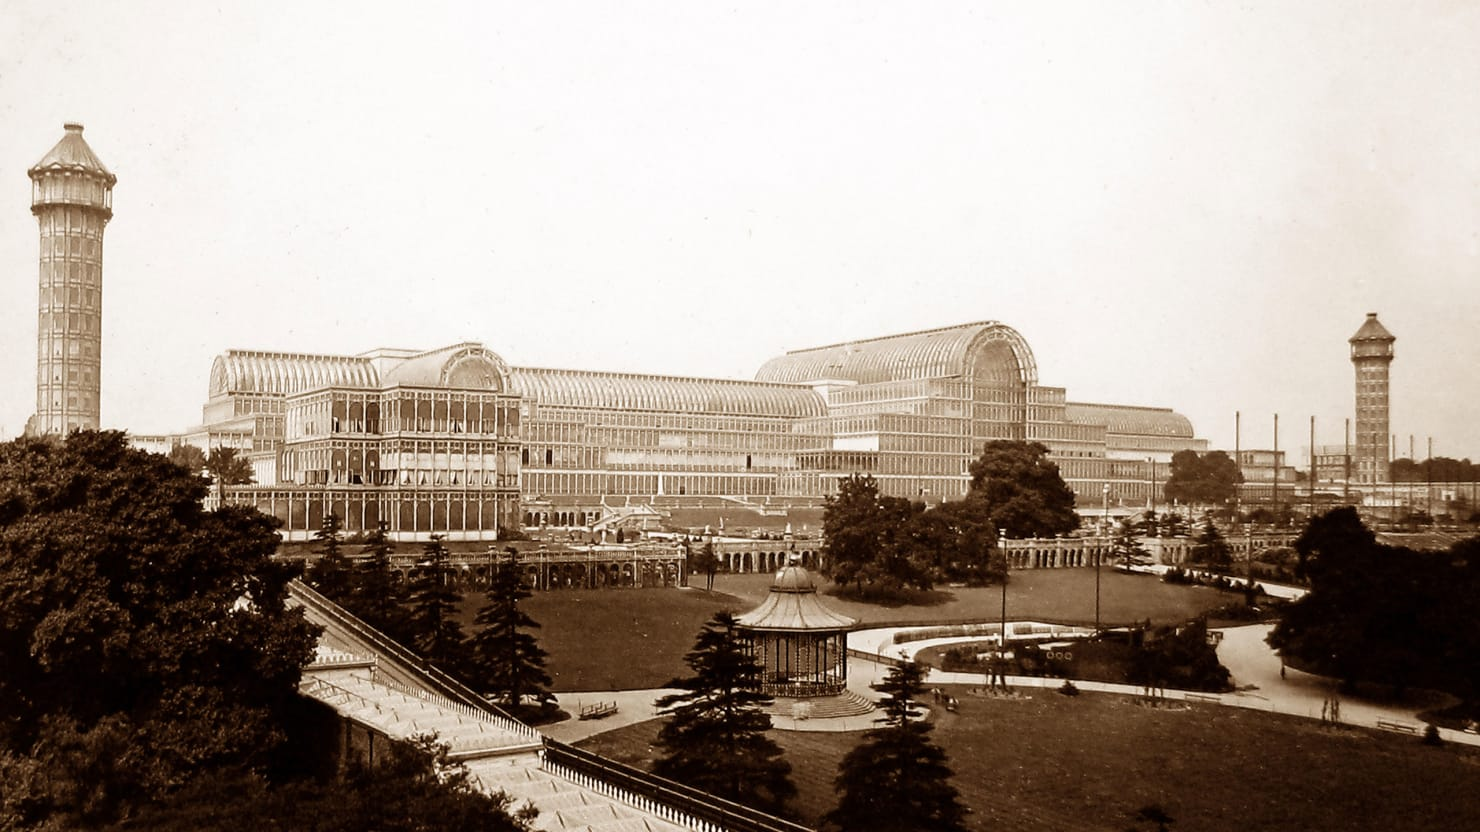 South End Auto >> The Glorious Birth and Blazing End of London's Crystal Palace